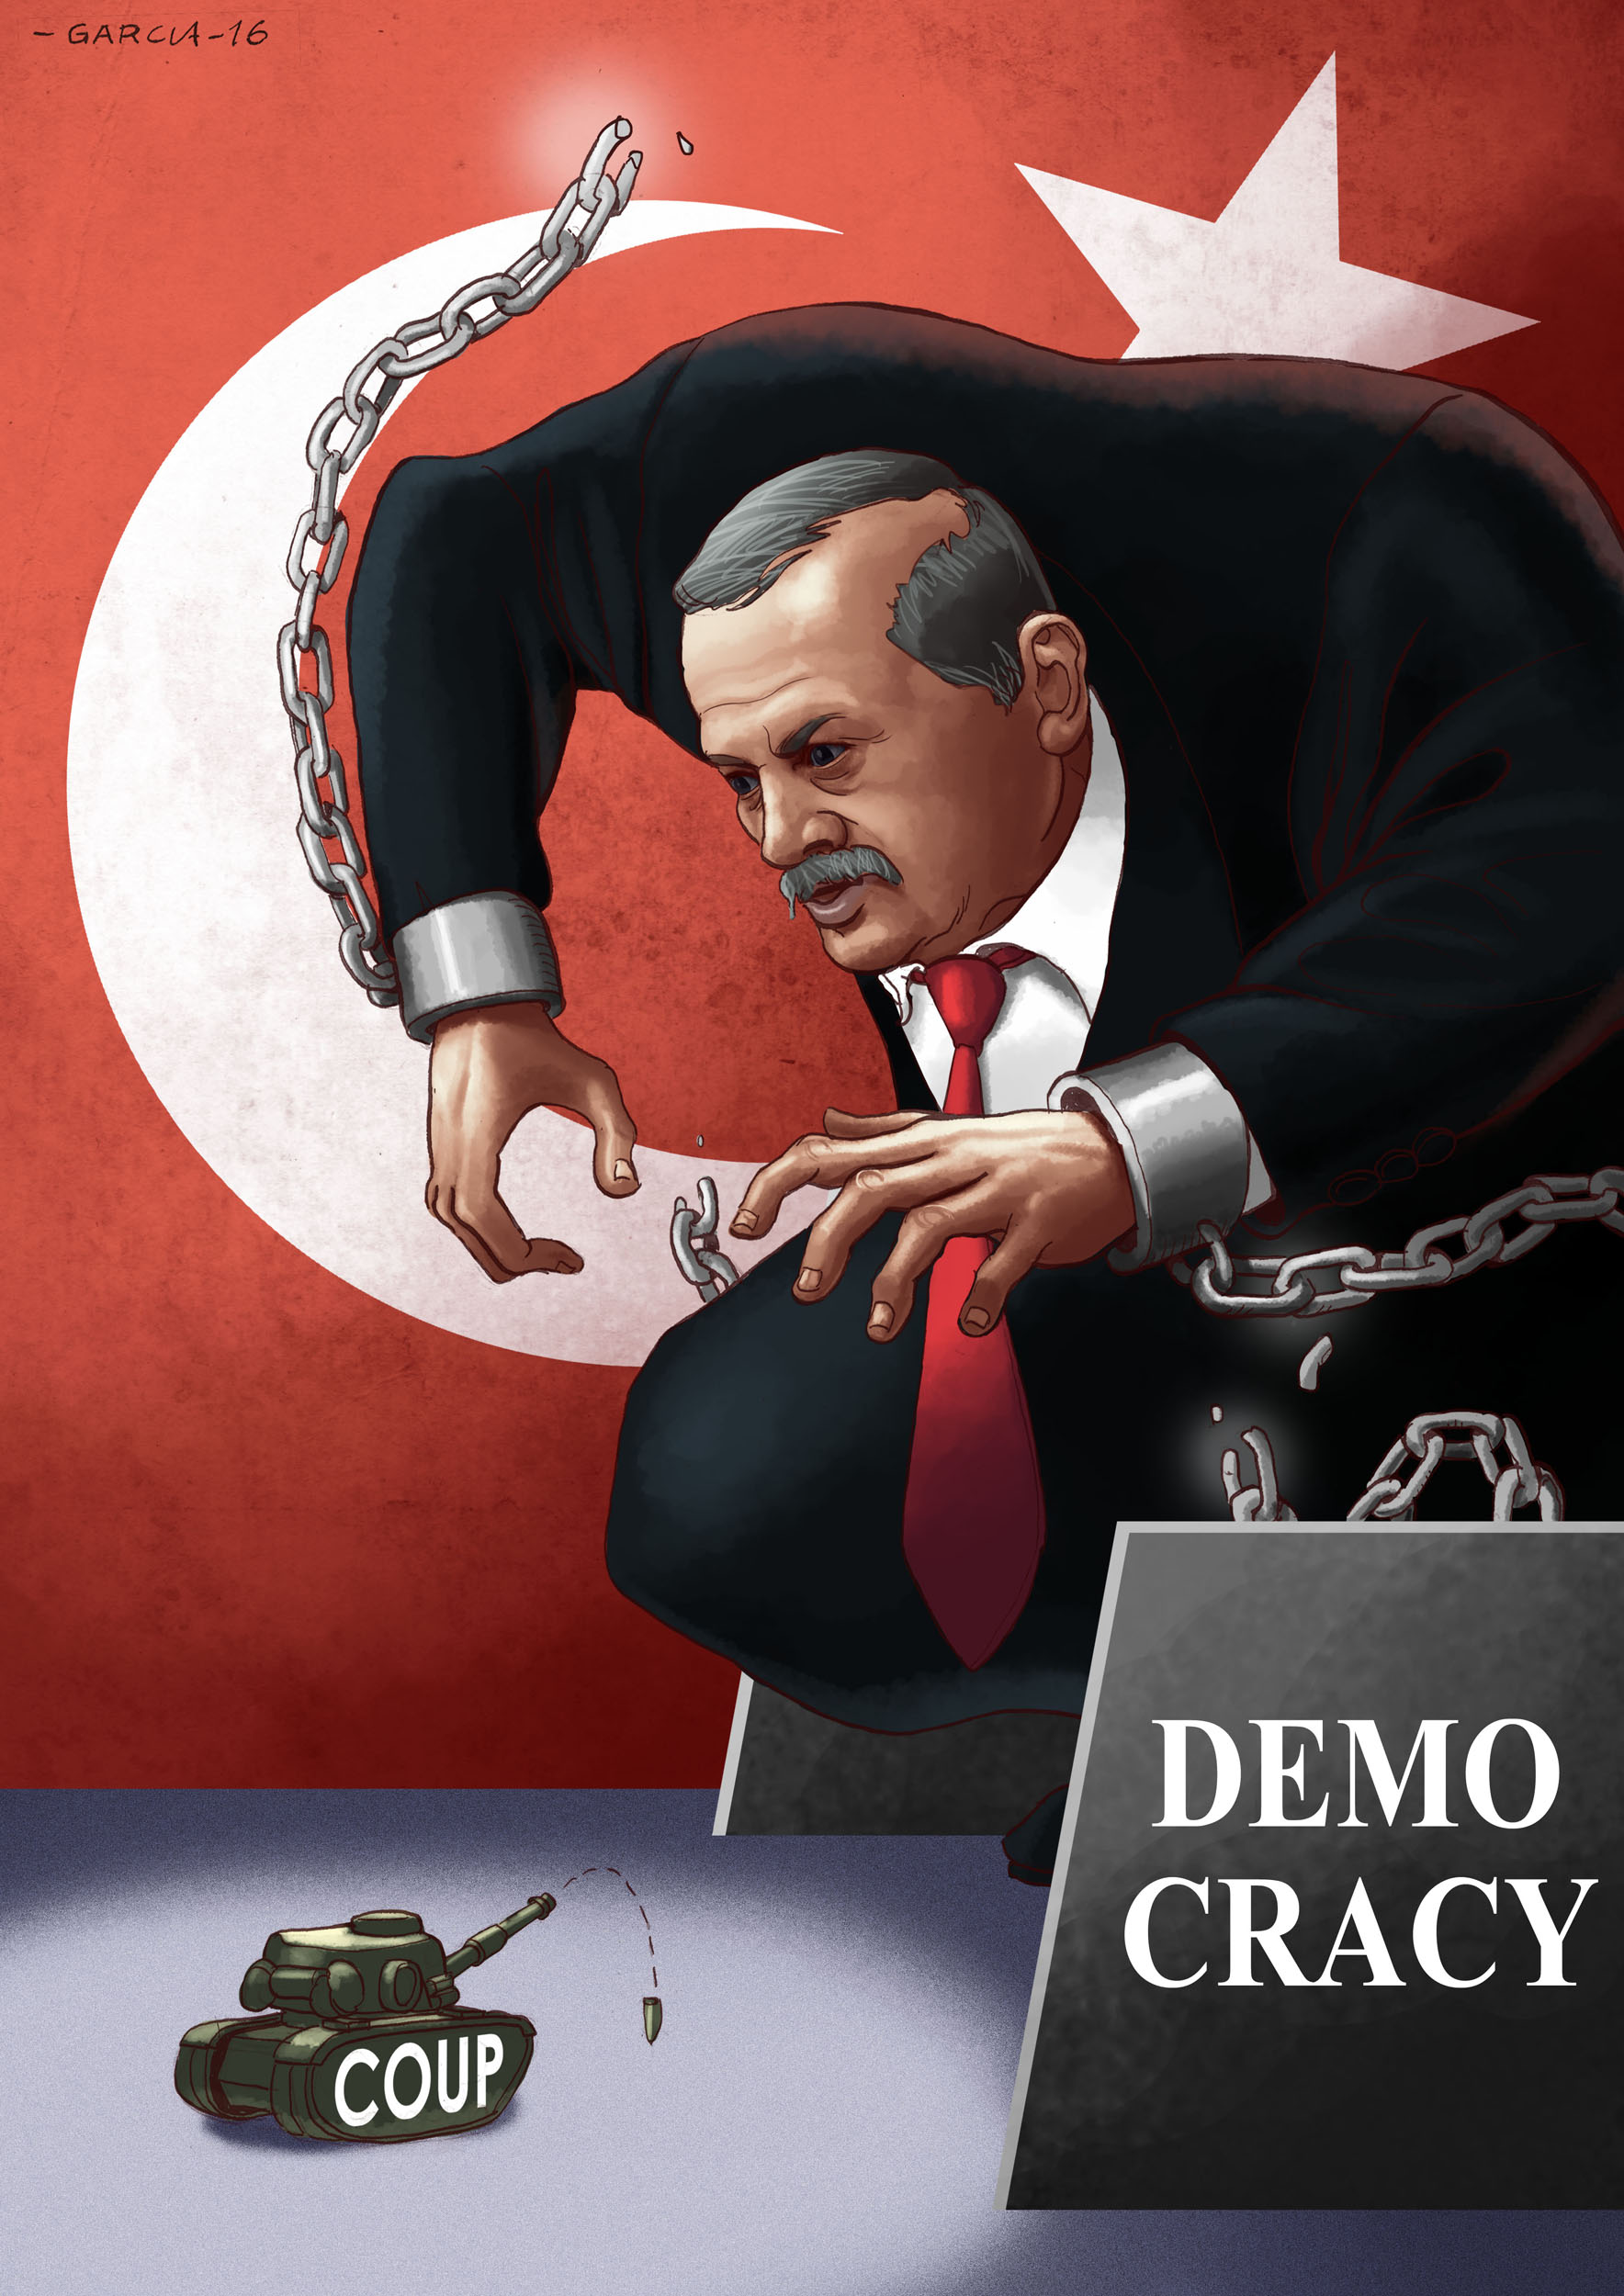 Daniel Garcia Art Cartoon Erdogan Turkey Coup Revolution Turkiye hukumet darbesi purge 2